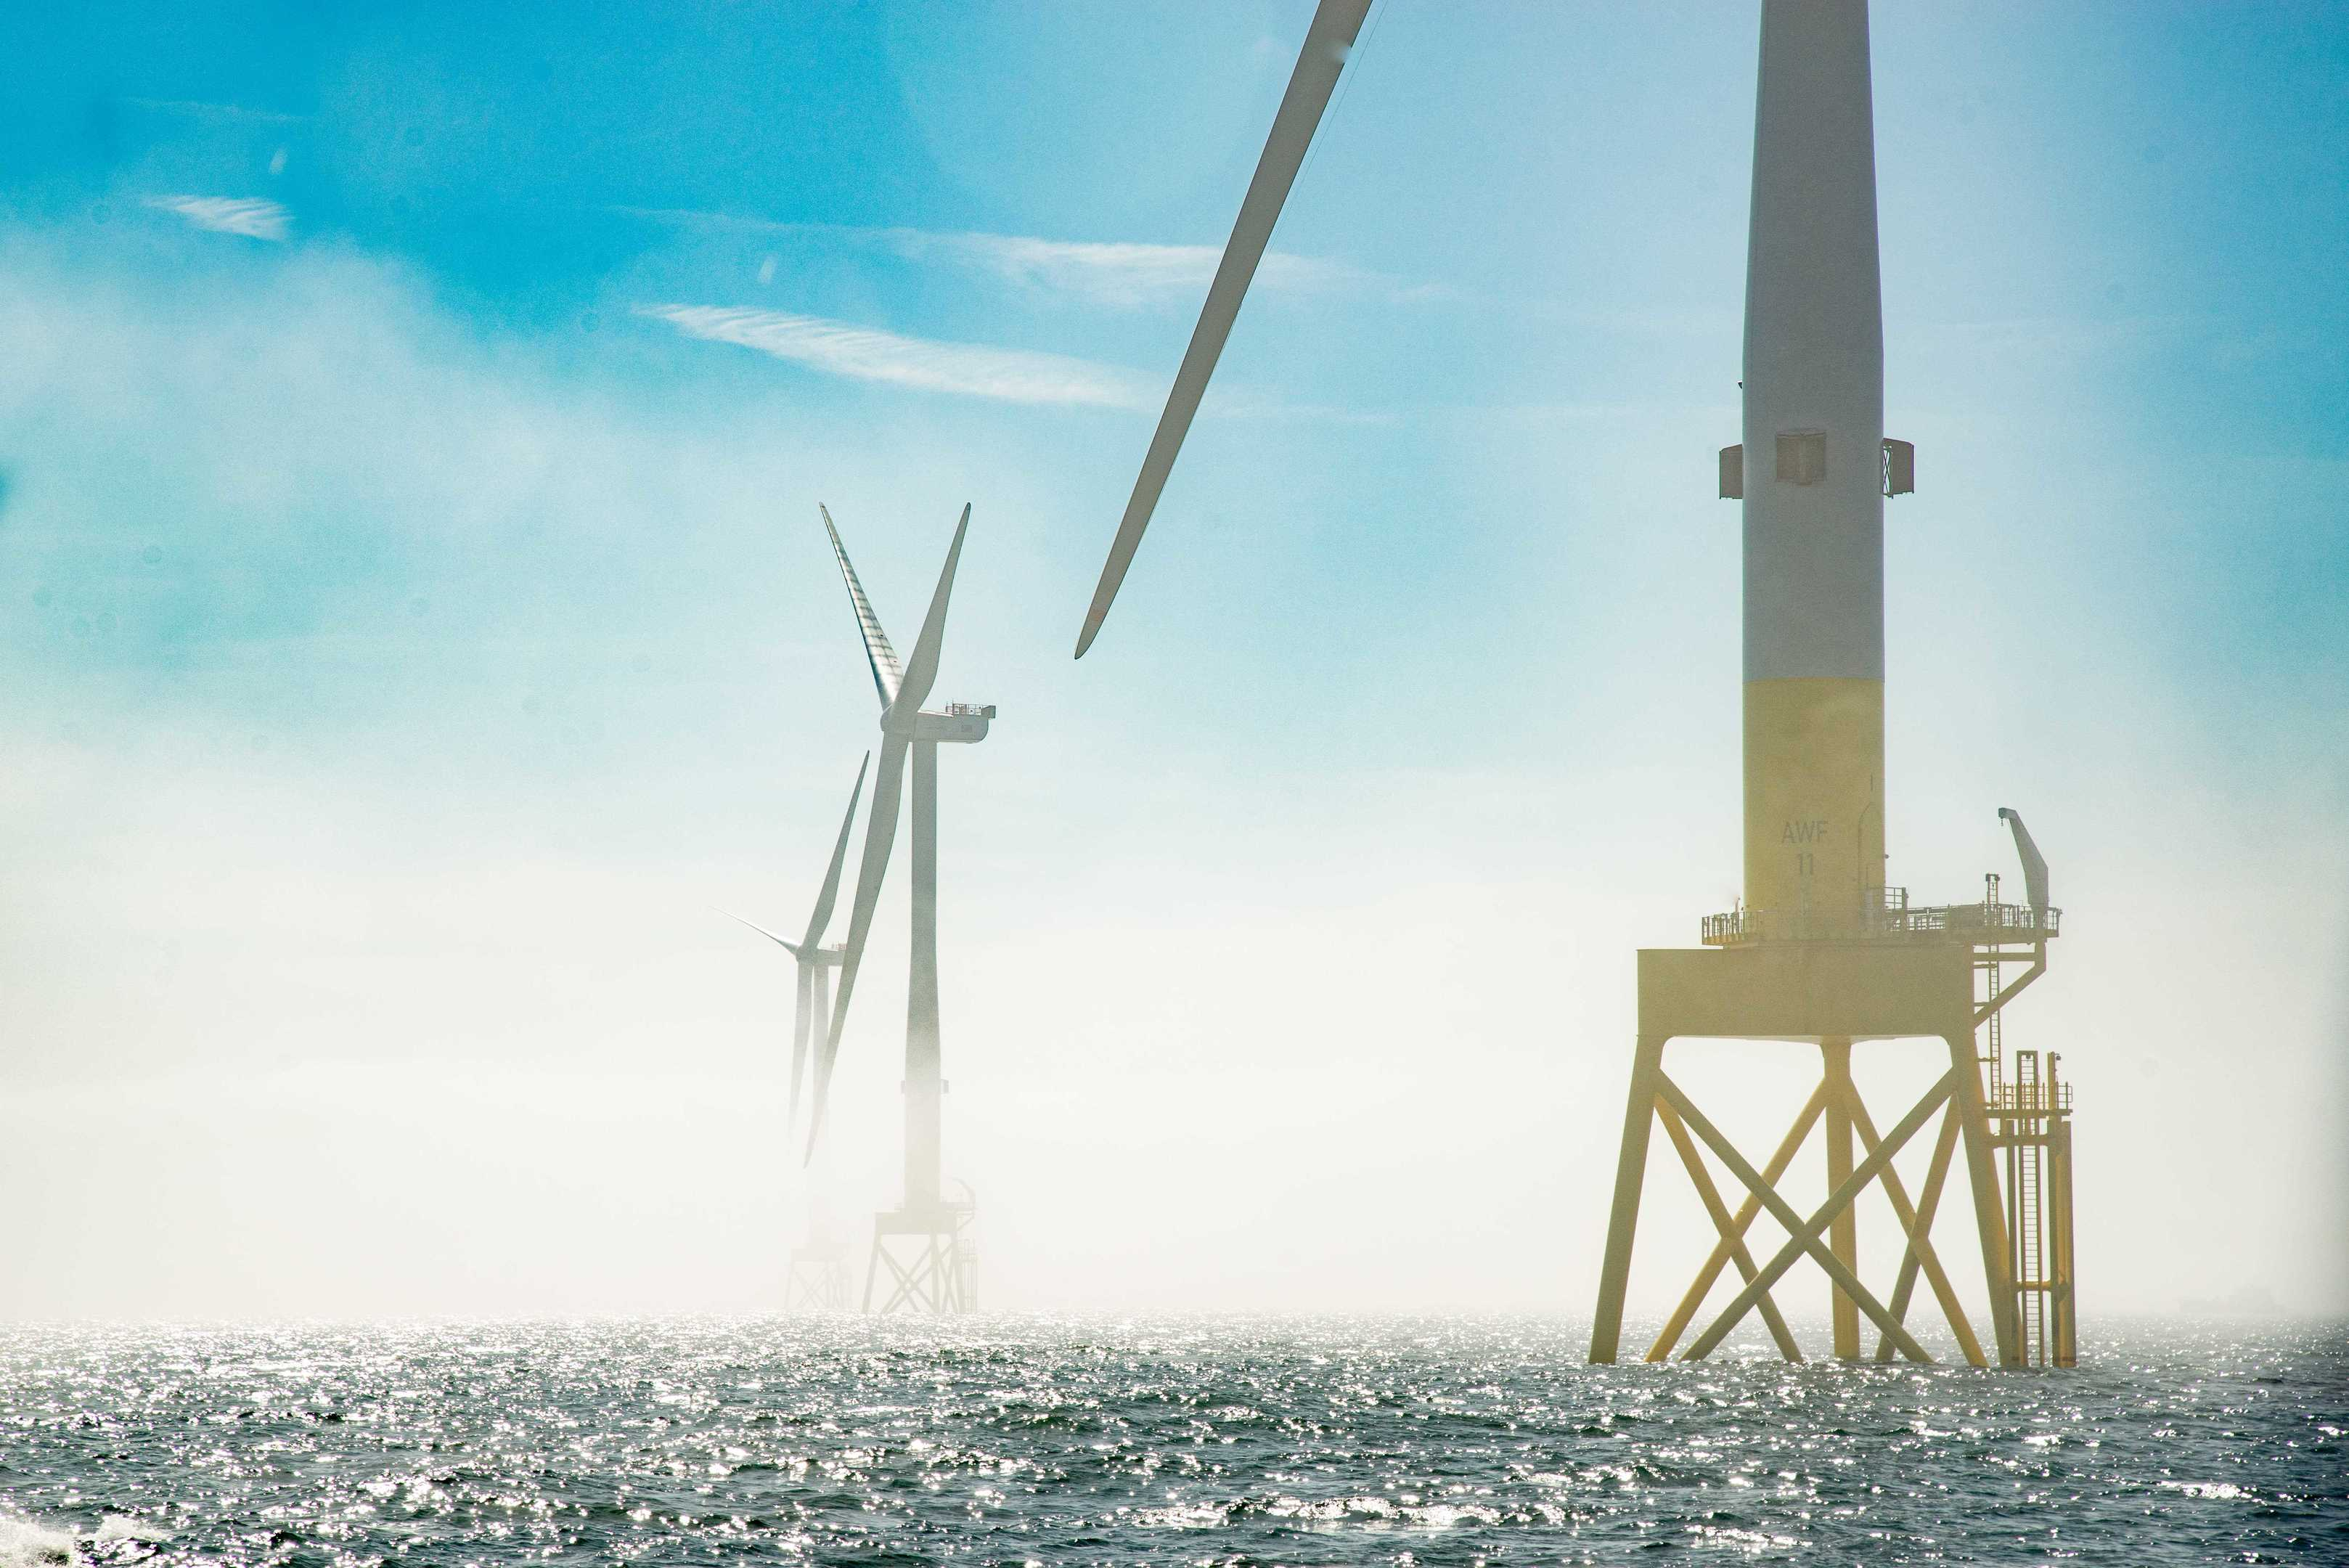 A picture of the Aberdeen Offshore Wind Farm